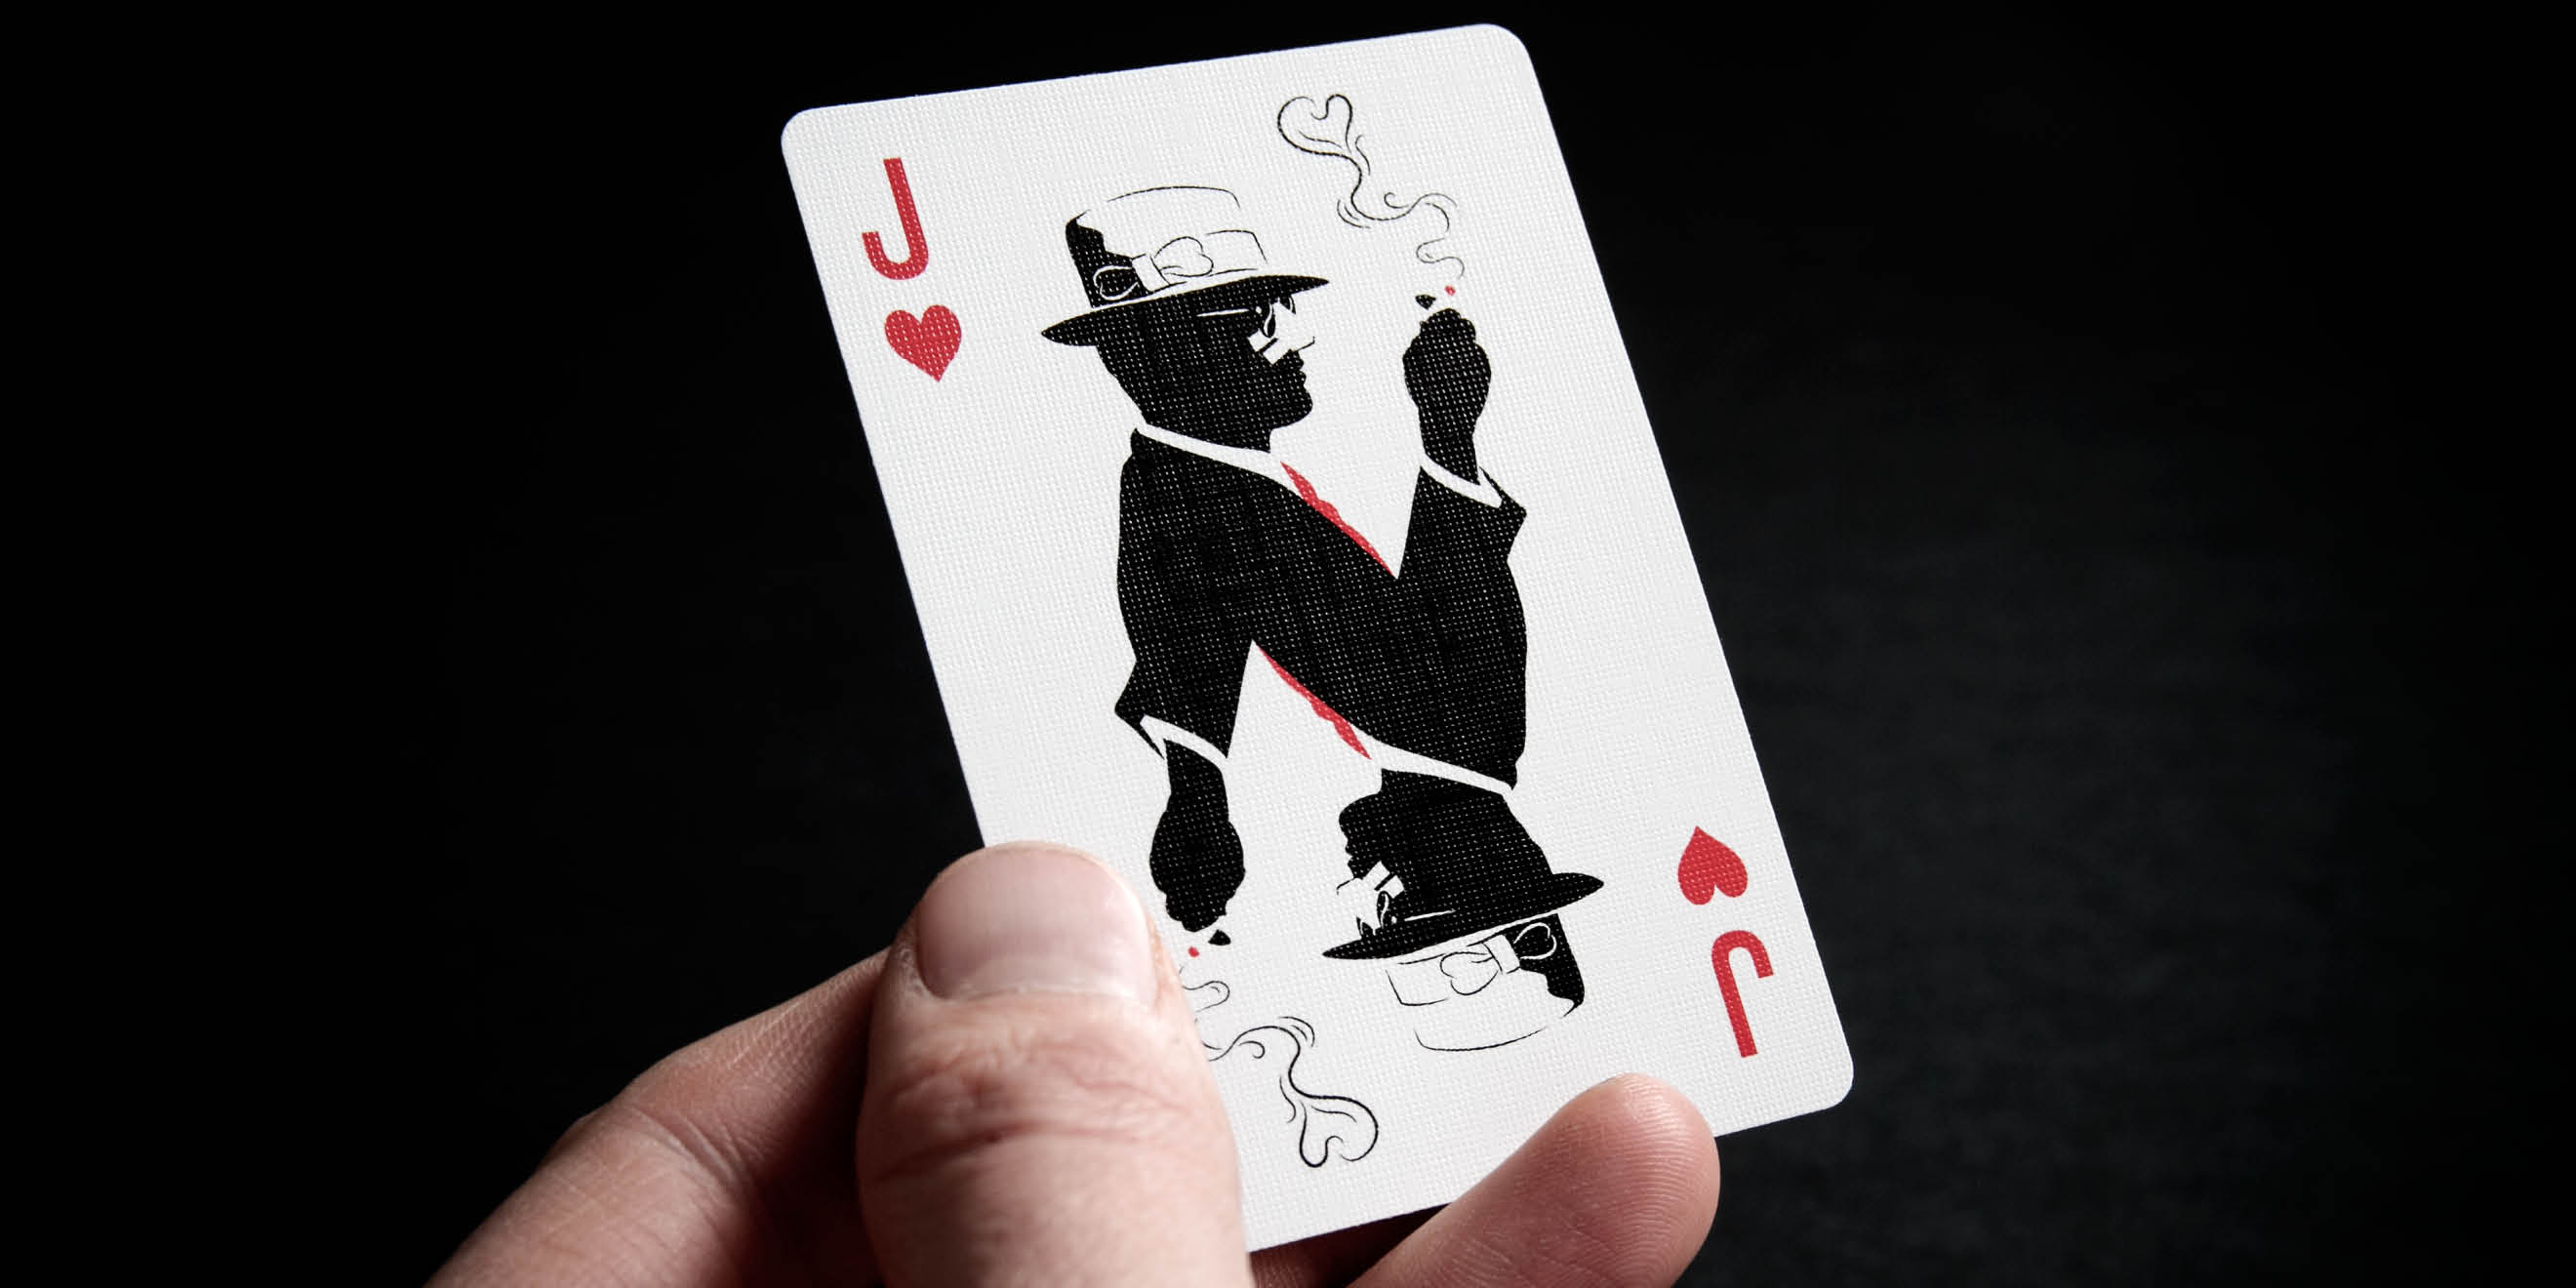 Single playing card showing Chinatown illustration card